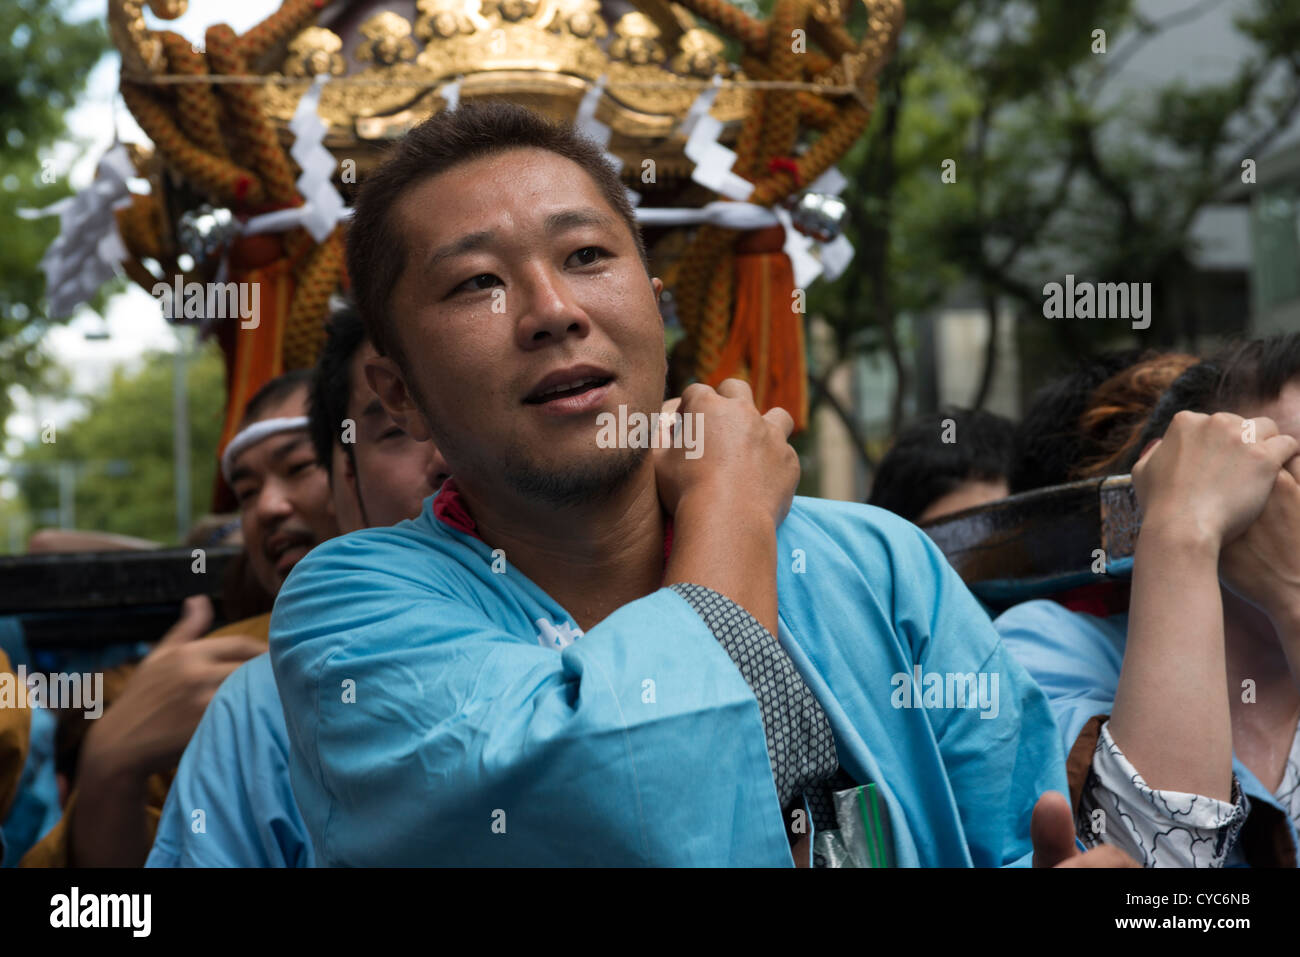 A crowd of worshippers carrying a portable mikoshi shrine Omote Sando Tokyo Japan - Stock Image